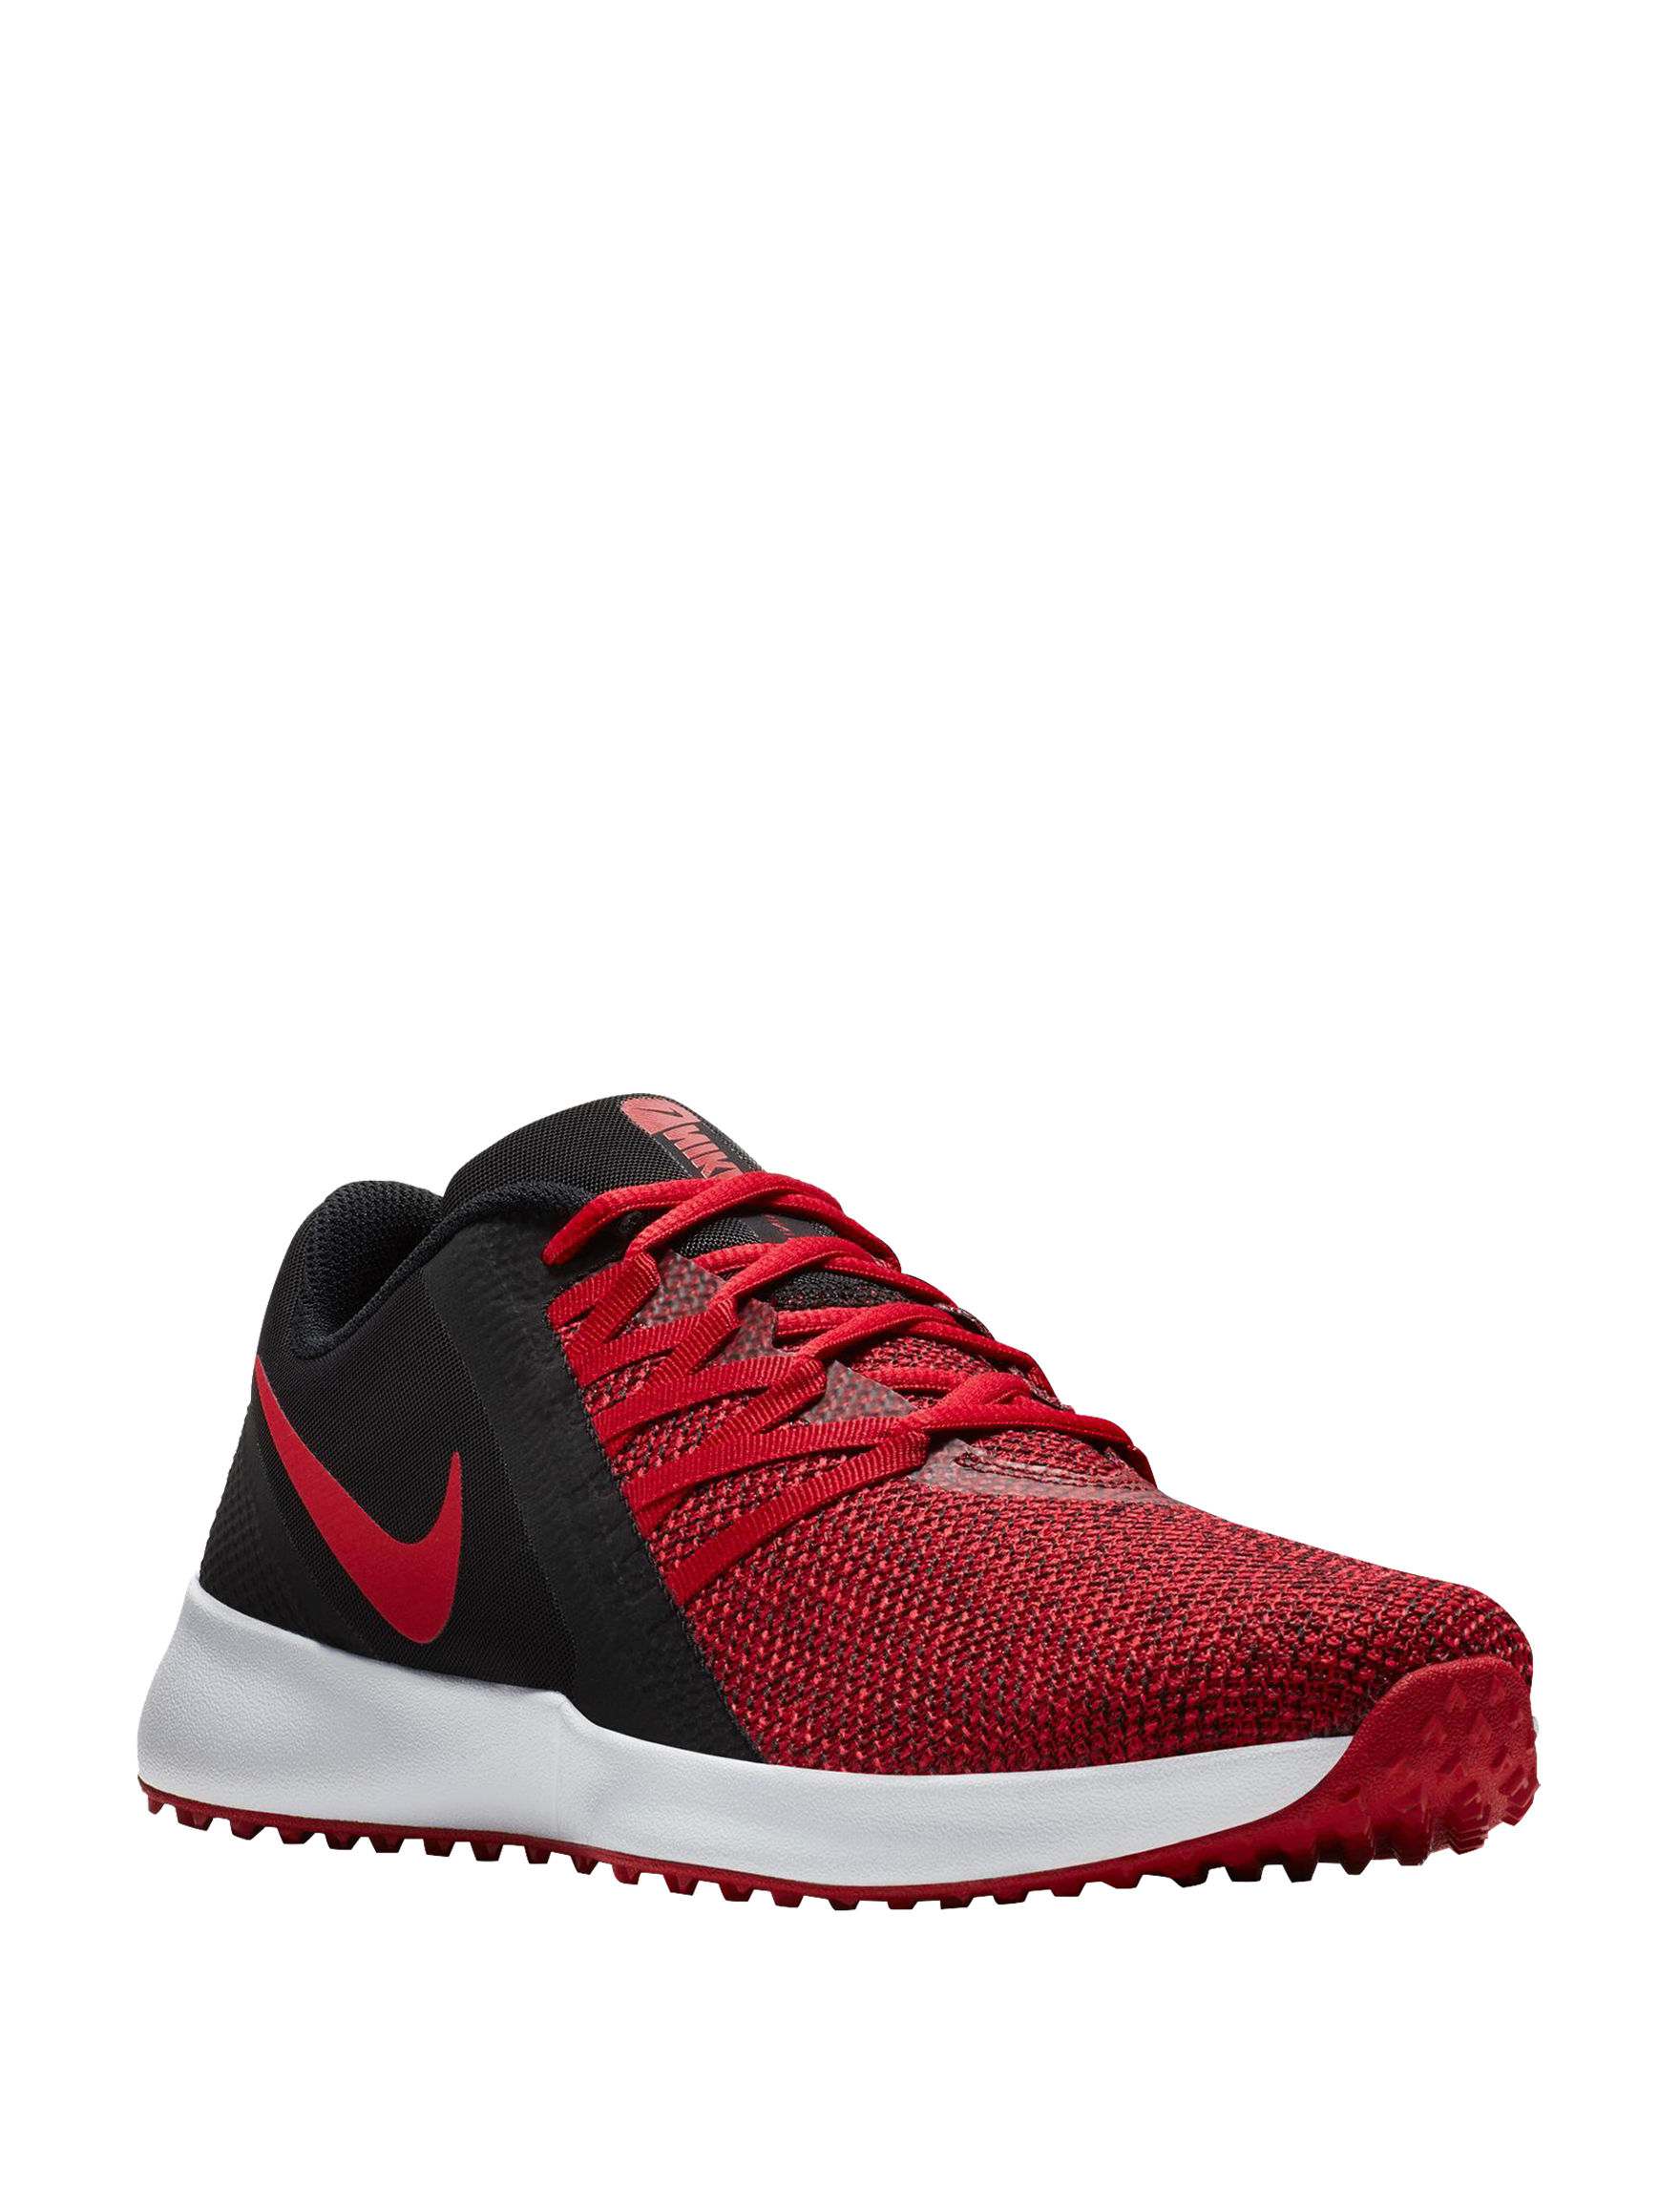 cheap for discount a19fd a0d3a Nike Men's Varsity Compete Trainer 4E Wide Training Shoes | Stage Stores